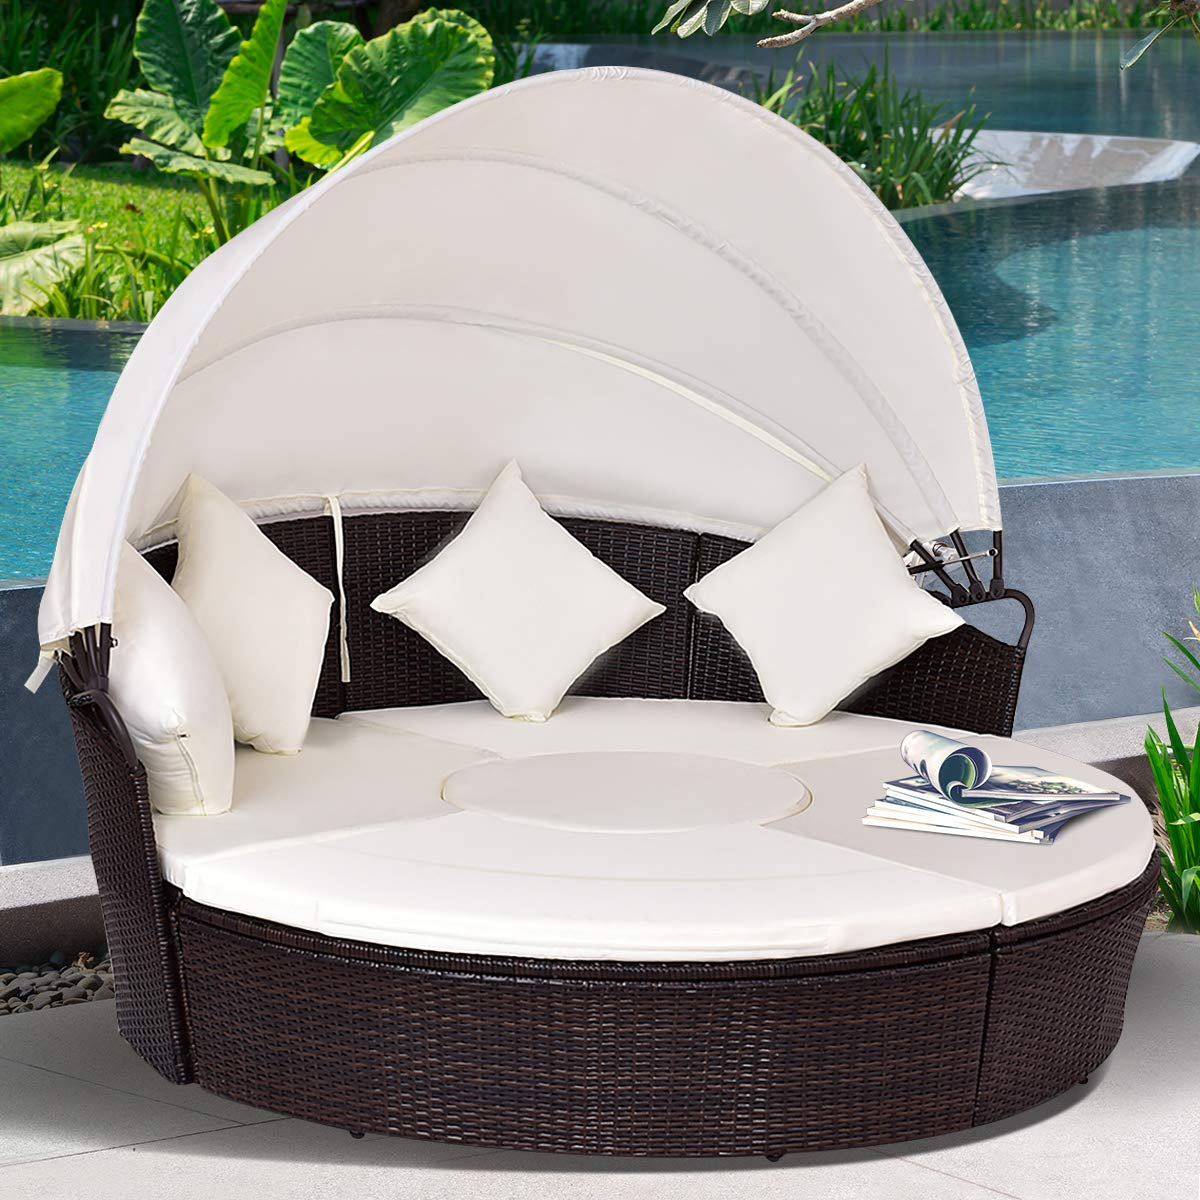 Tangkula Patio Daybed, 73'' Diameter Outdoor Lawn Backyard Poolside Garden Round Sofas with Retractable Canopy, Wicker Rattan Round Daybed, Seating Separates Cushioned Seats (Beige) by Tangkula